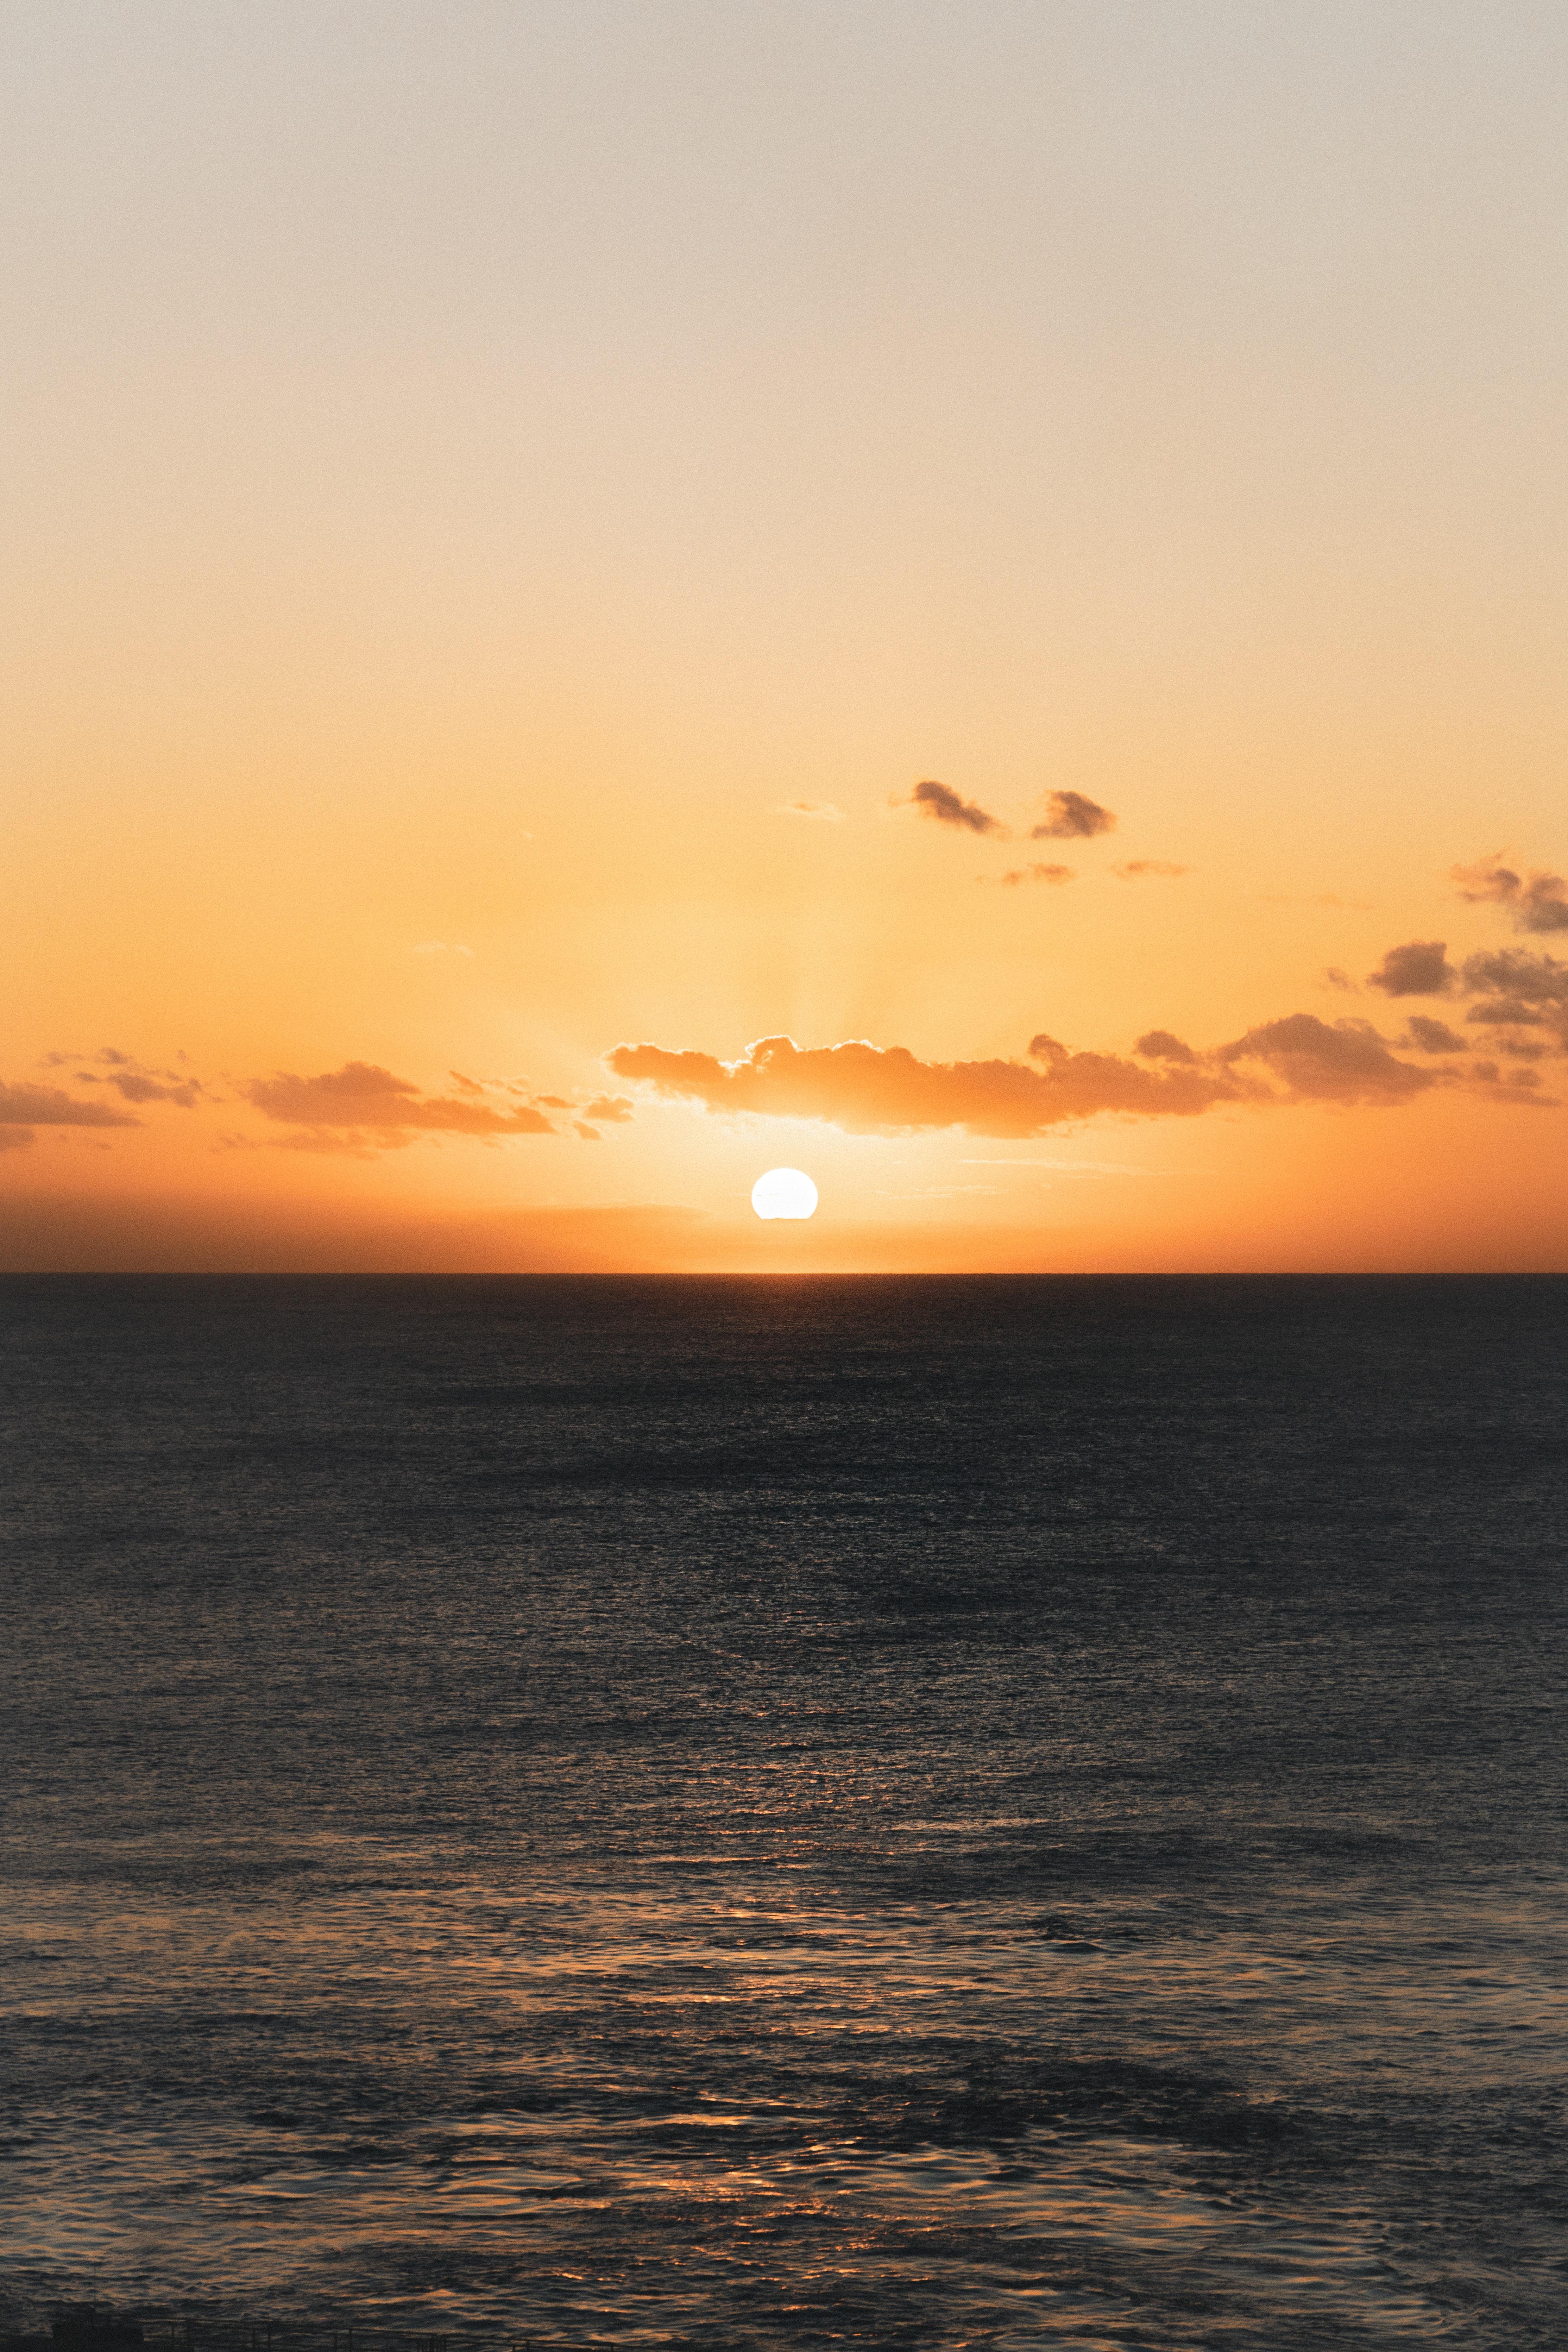 110799 download wallpaper Nature, Sunset, Ocean, Horizon, Dusk, Twilight, Sun screensavers and pictures for free